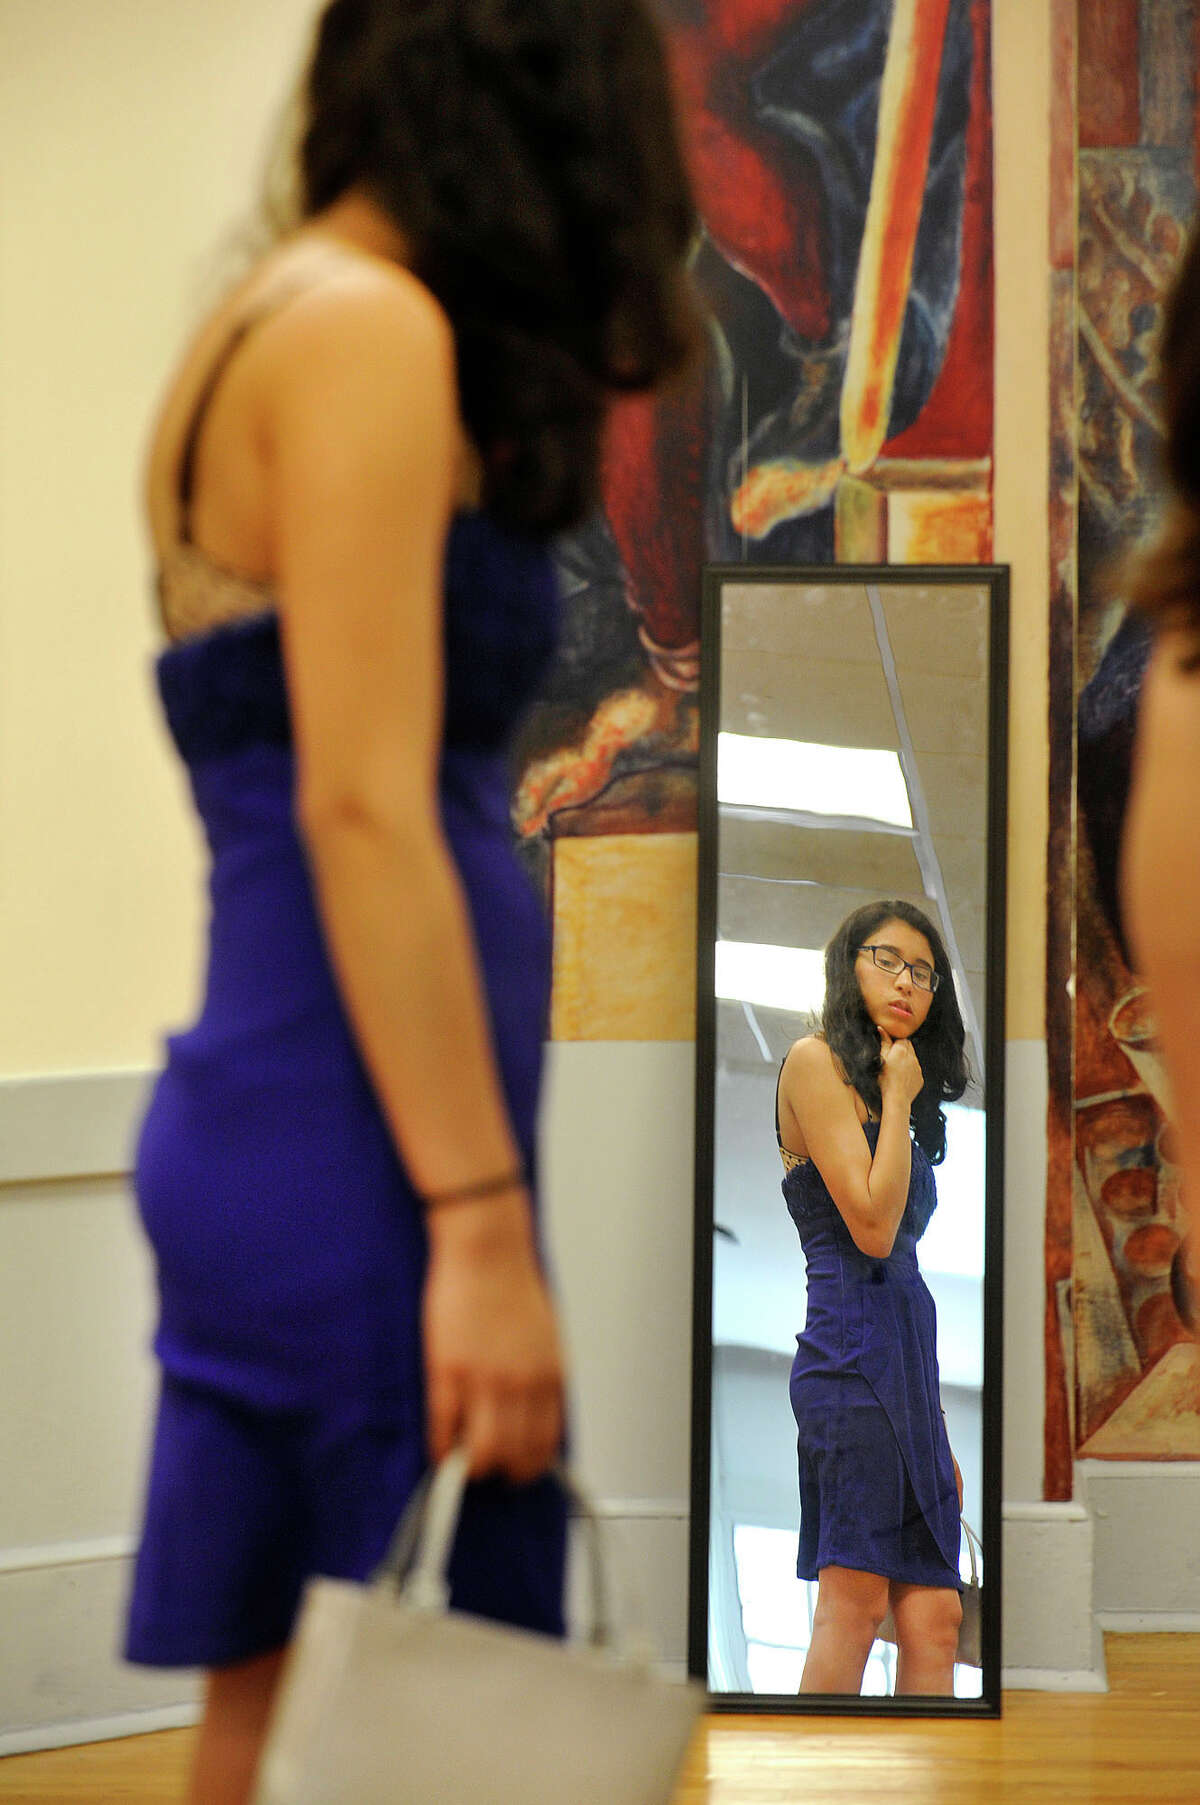 Stamford High junior Susana Cevallos looks at herself in a mirror after trying on a dress during the second annual Cinderella Project prom dress sale at Stamford High School in Stamford, Conn., on Wednesday, March 25, 2015. Many dresses and tuxedos normally sell for hundreds of dollars but are available through the Cinderella Project for $20 or under. All money from the sales goes into a fund for other prom-related costs for students. Organizer Holly Hyman says she is selling nearly 300 dresses and tuxedos that were donated from a handful of local organizations and individual donors. She will be at Westhill High School on Wednesday, April 8 from 7 a.m. to 3 p.m. For more information or to donate dresses or tuxedos, email Holly at hhman@optonline.net.